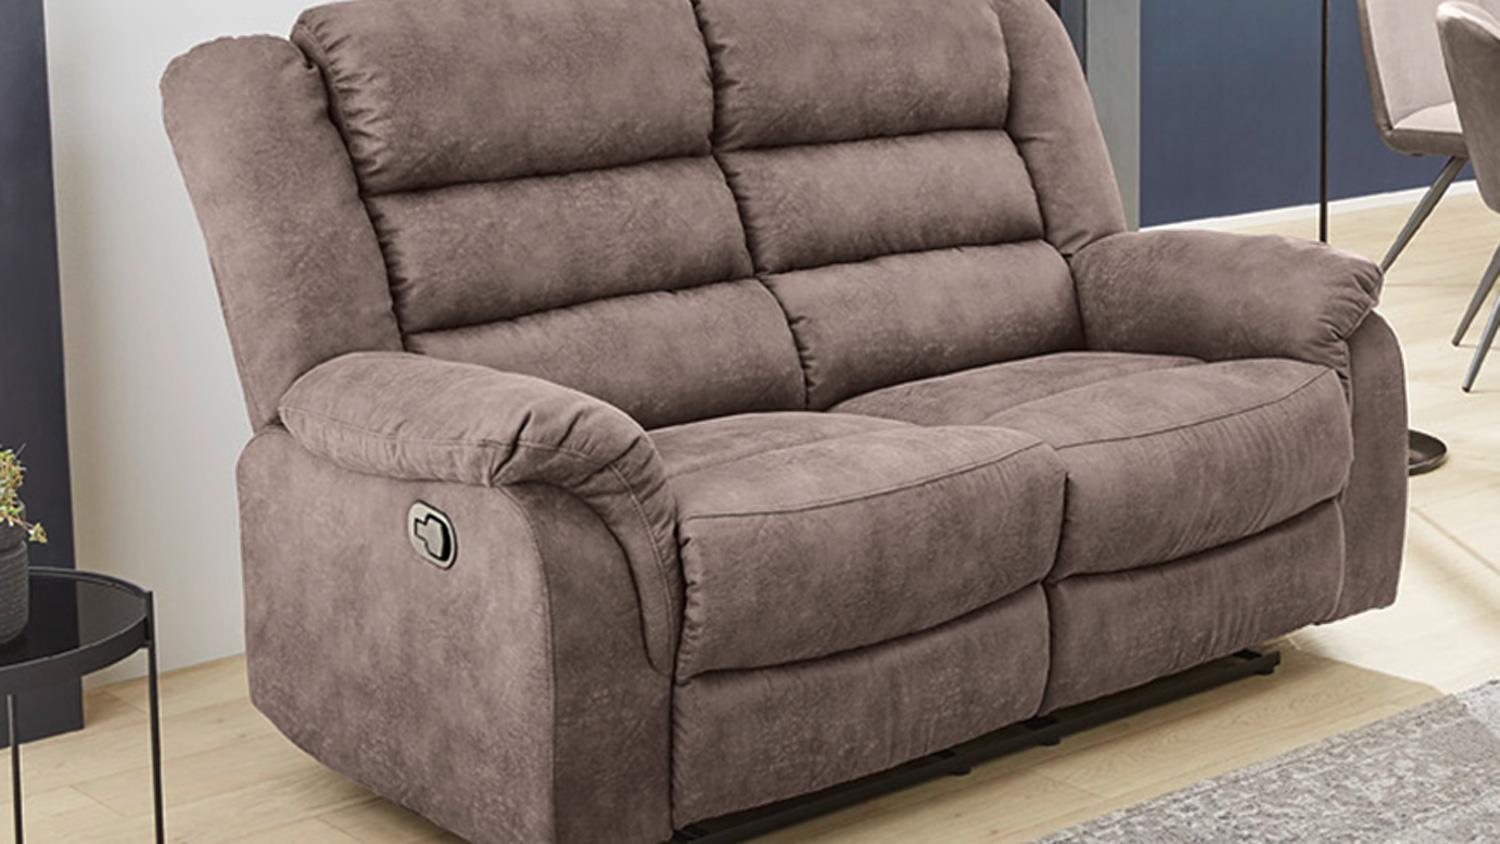 Sessel Grau Braun Sofa Cleveland Sessel Relaxsessel 2 Sitzer Funktion